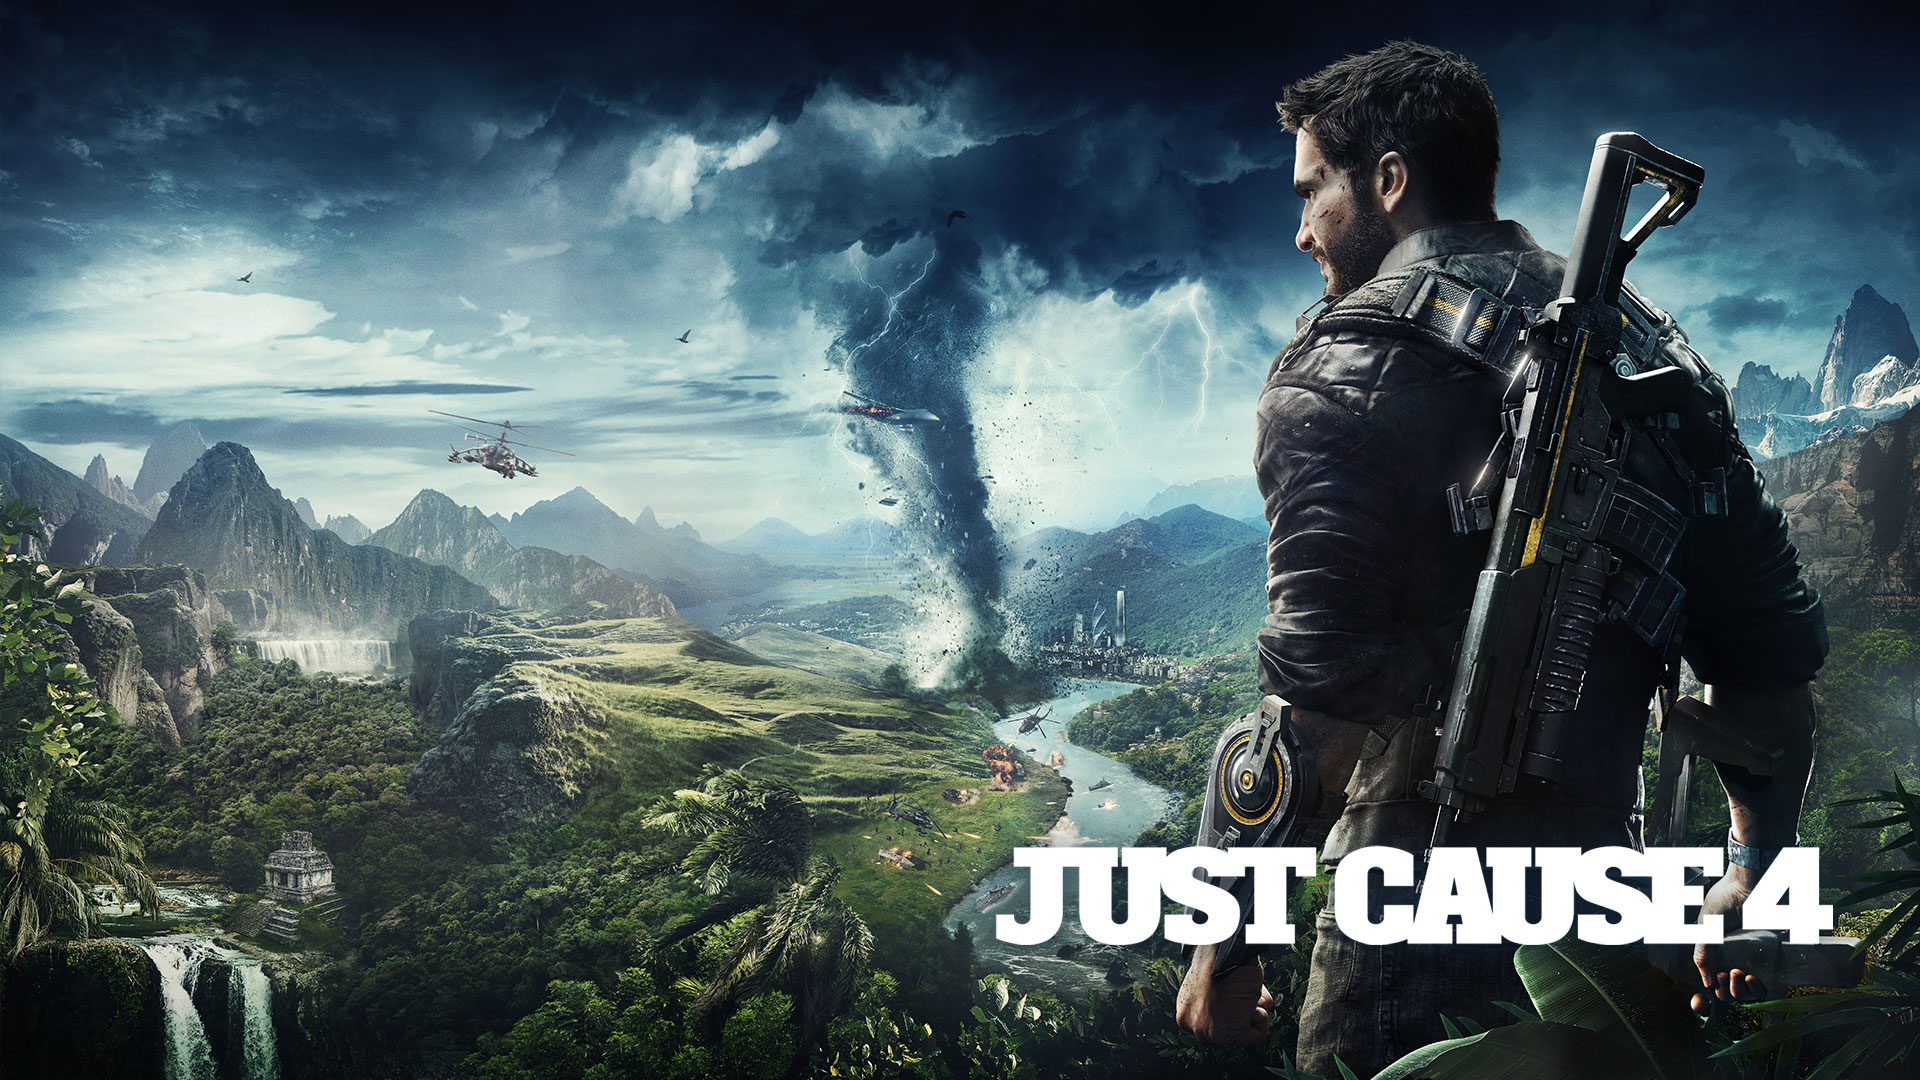 Just Cause 4, Rico Rodriguez stands on a cliff overlooking Solis being ravaged by a tornado.